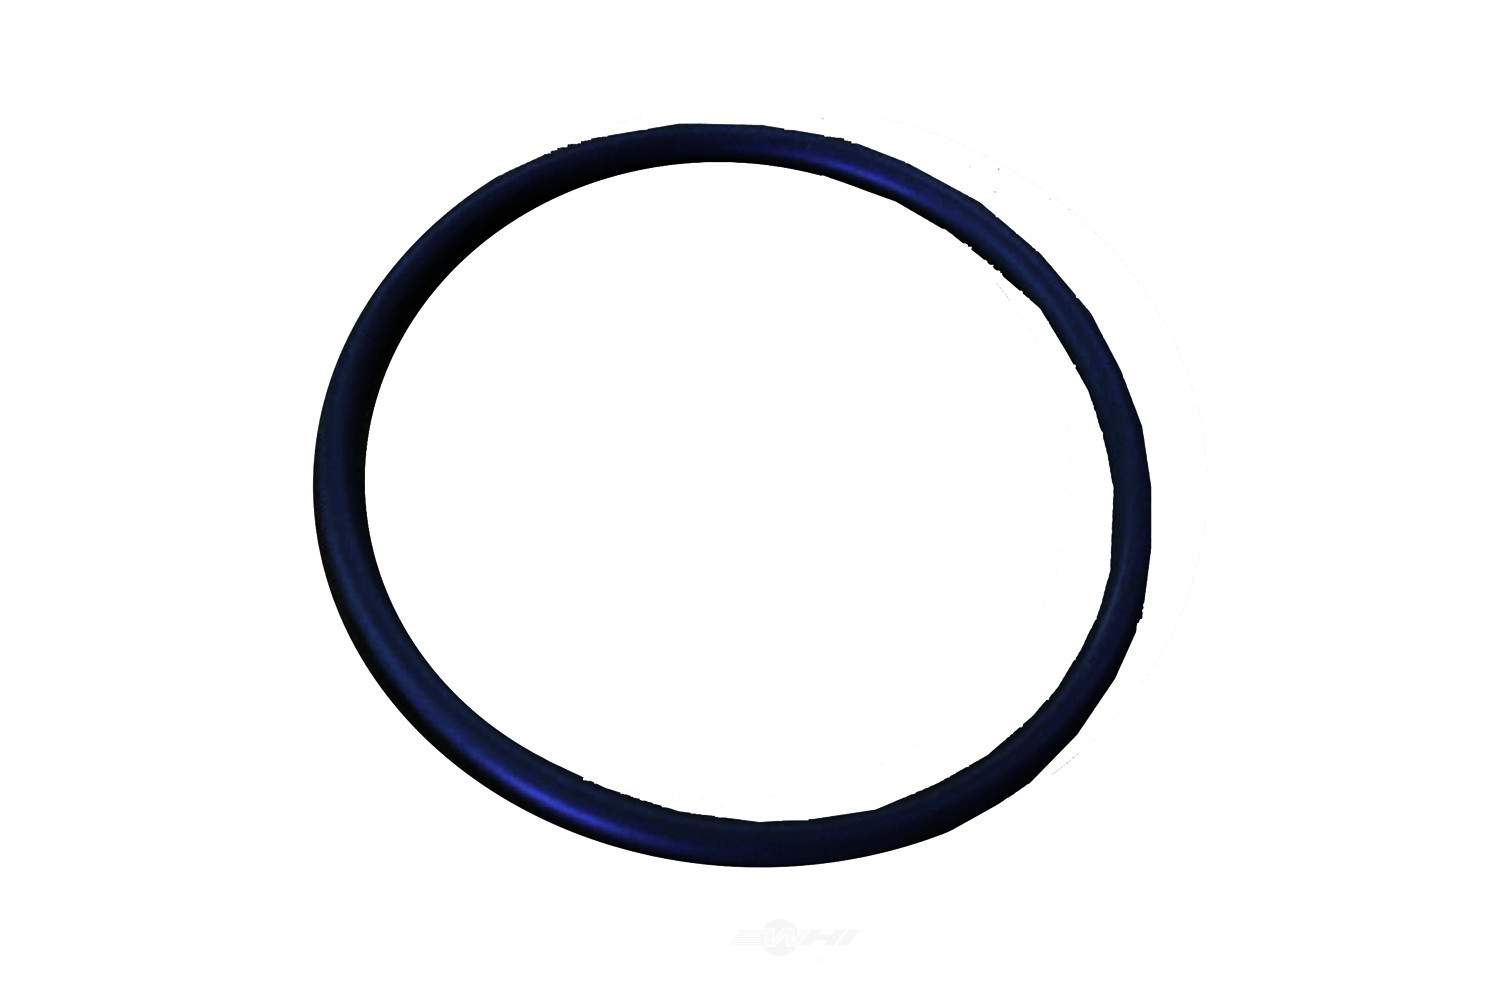 ACDELCO OE SERVICE - Fuel Pump Gasket - DCB G42